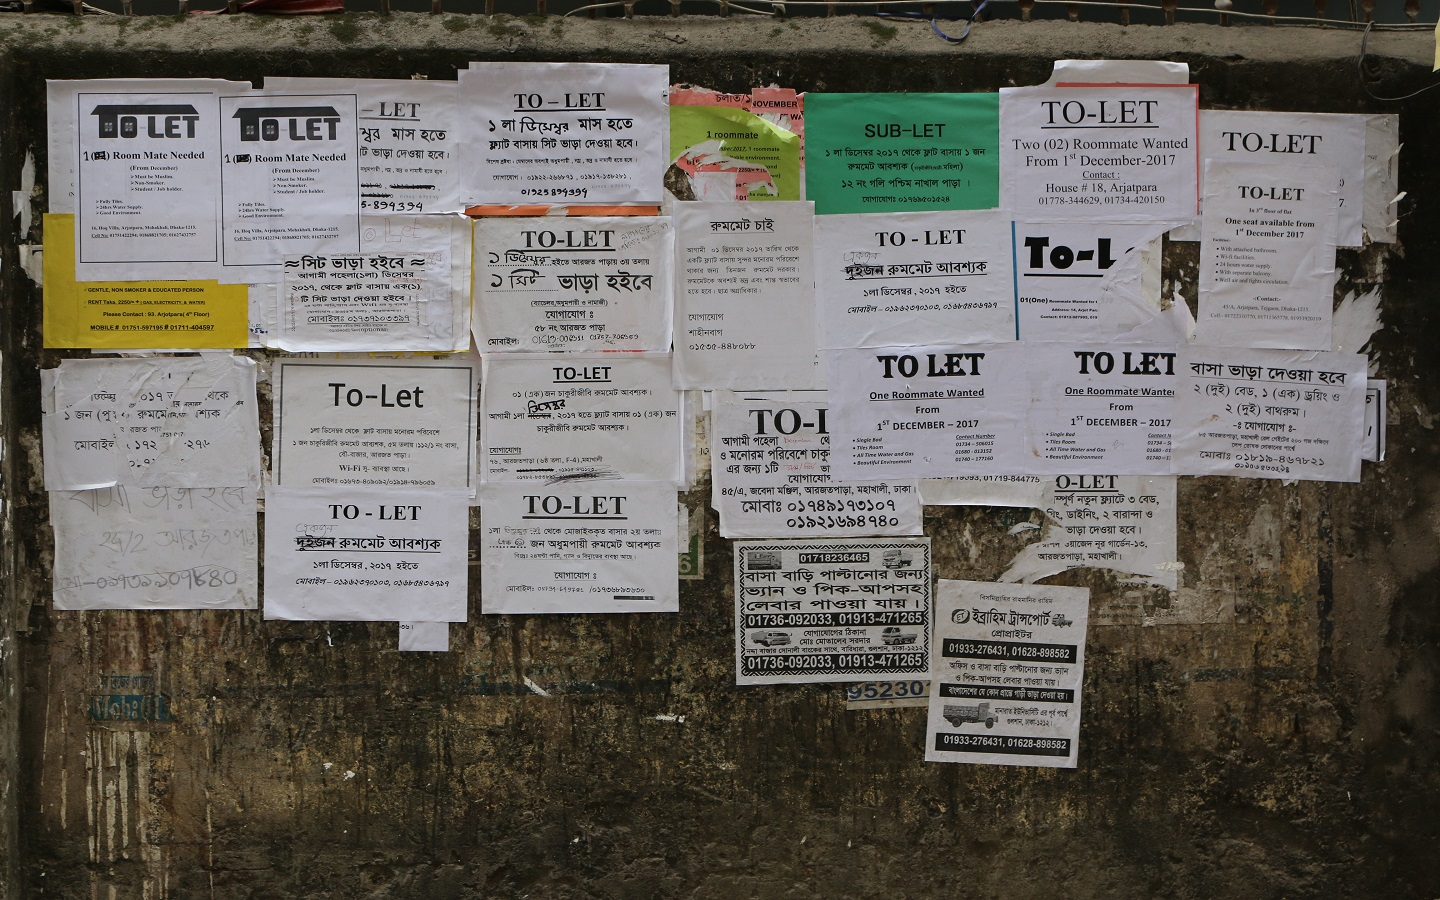 To-let sign on a wall